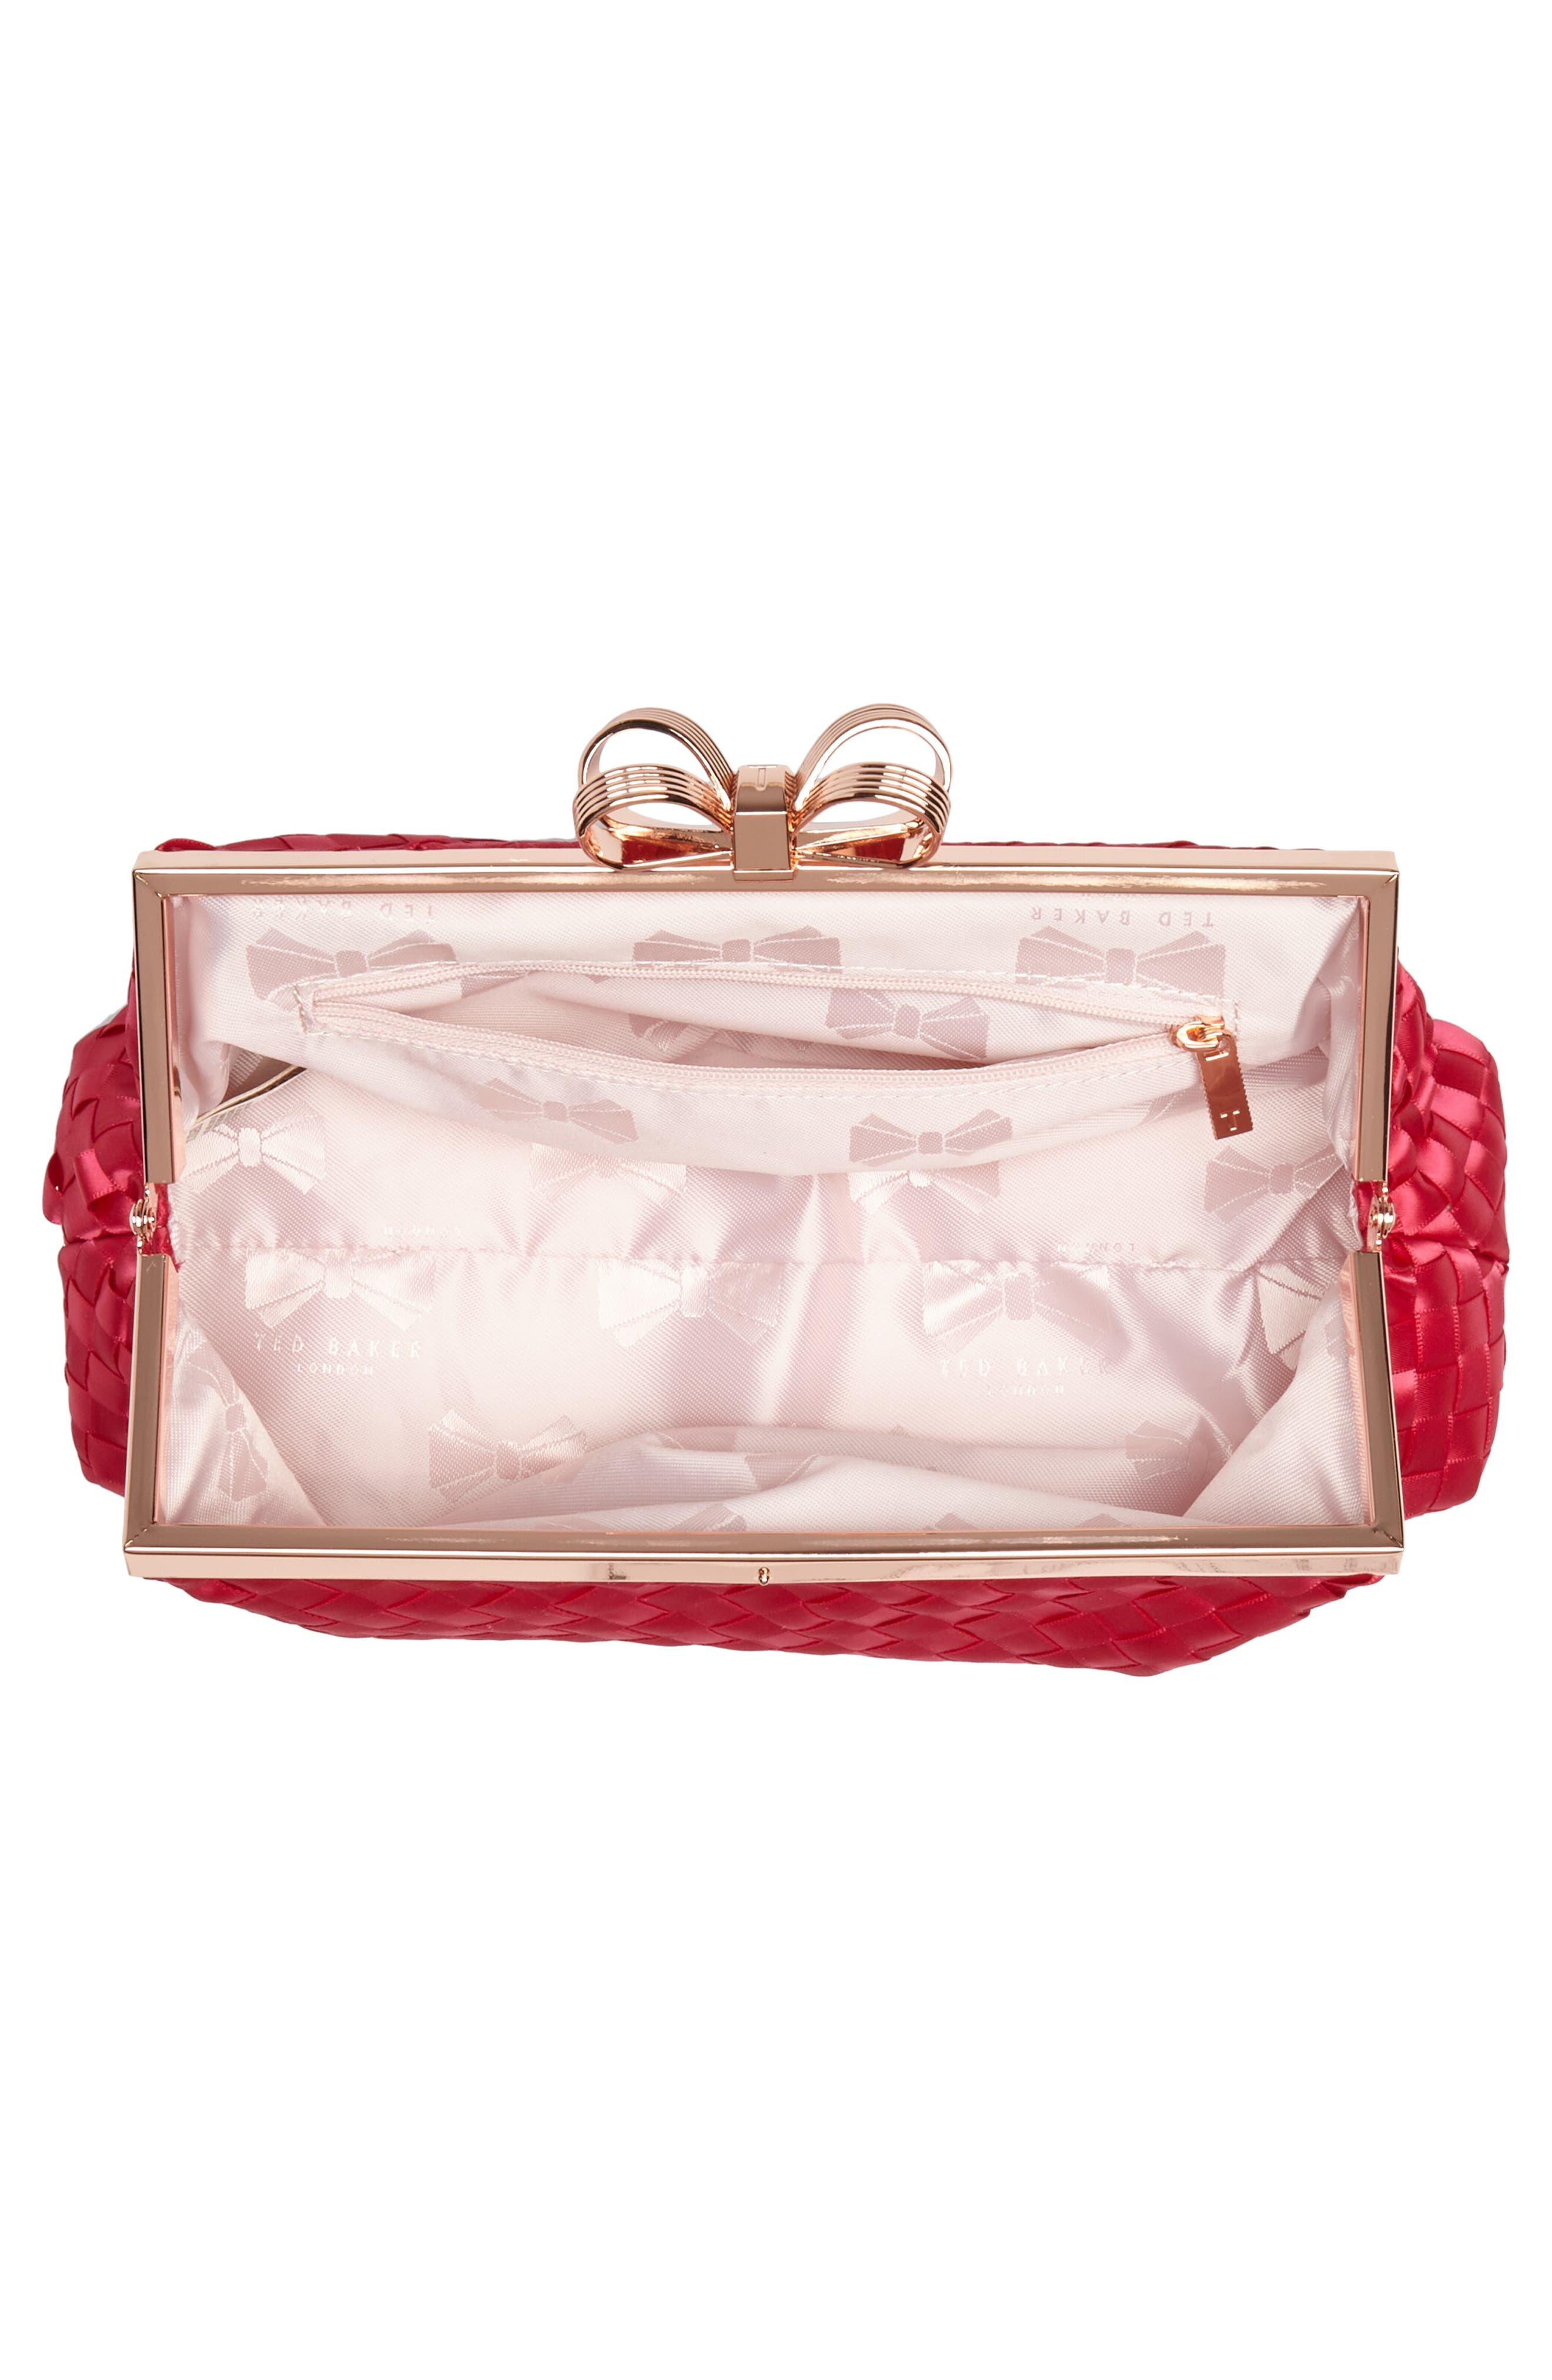 Alaina Woven Frame Clutch,                             Alternate thumbnail 3, color,                             Deep Pink